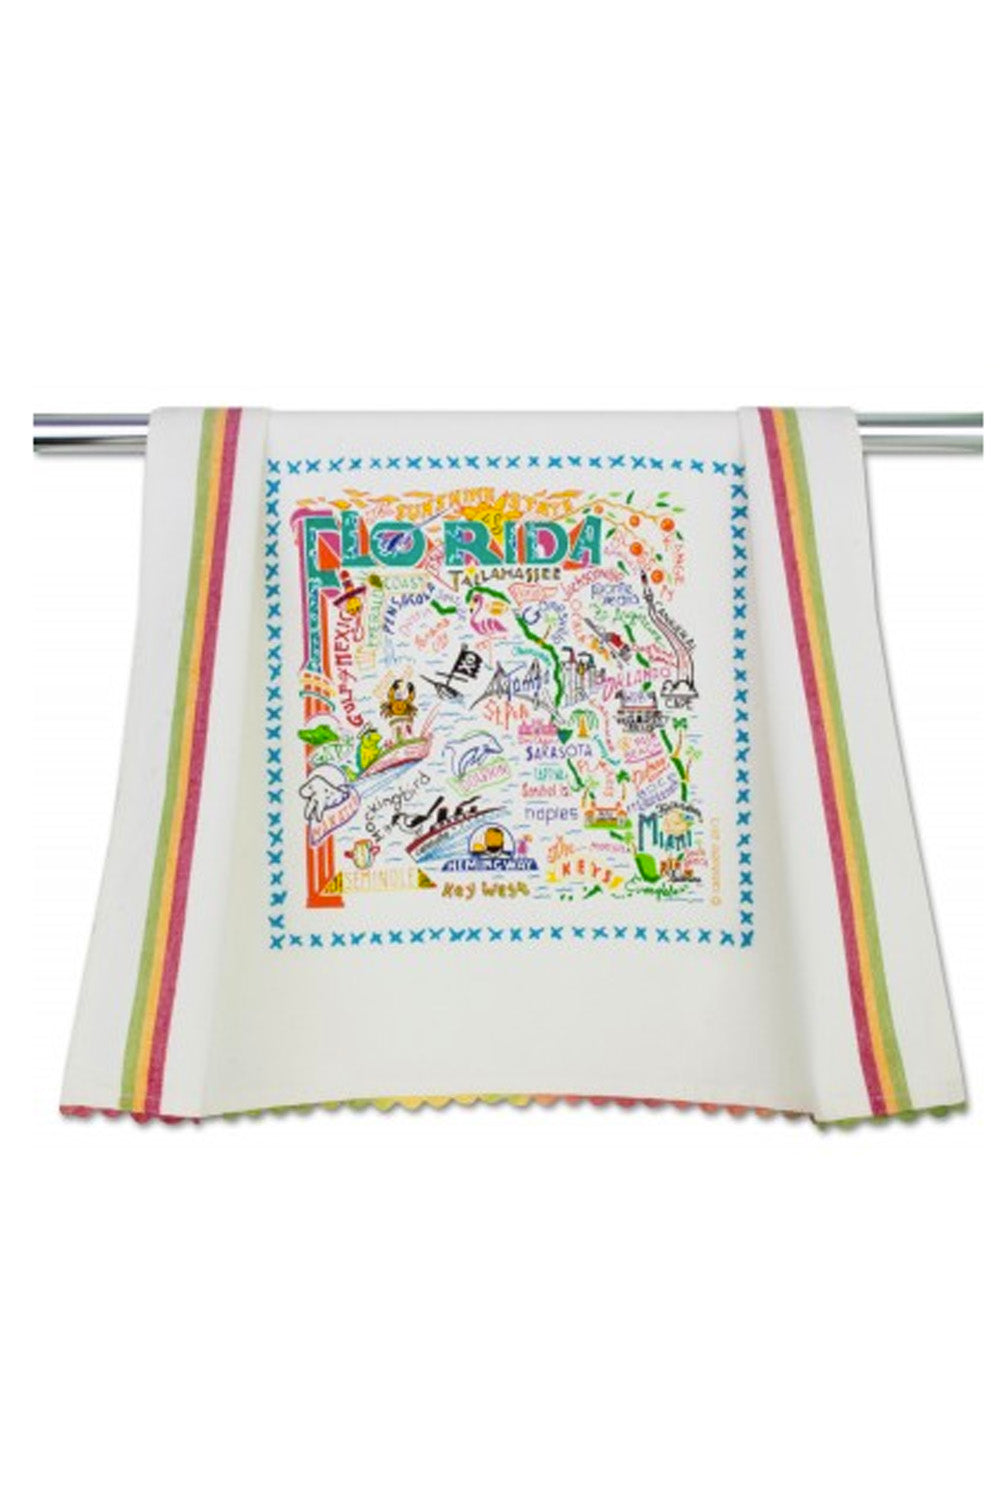 Embroidered Dish Towel  - Florida